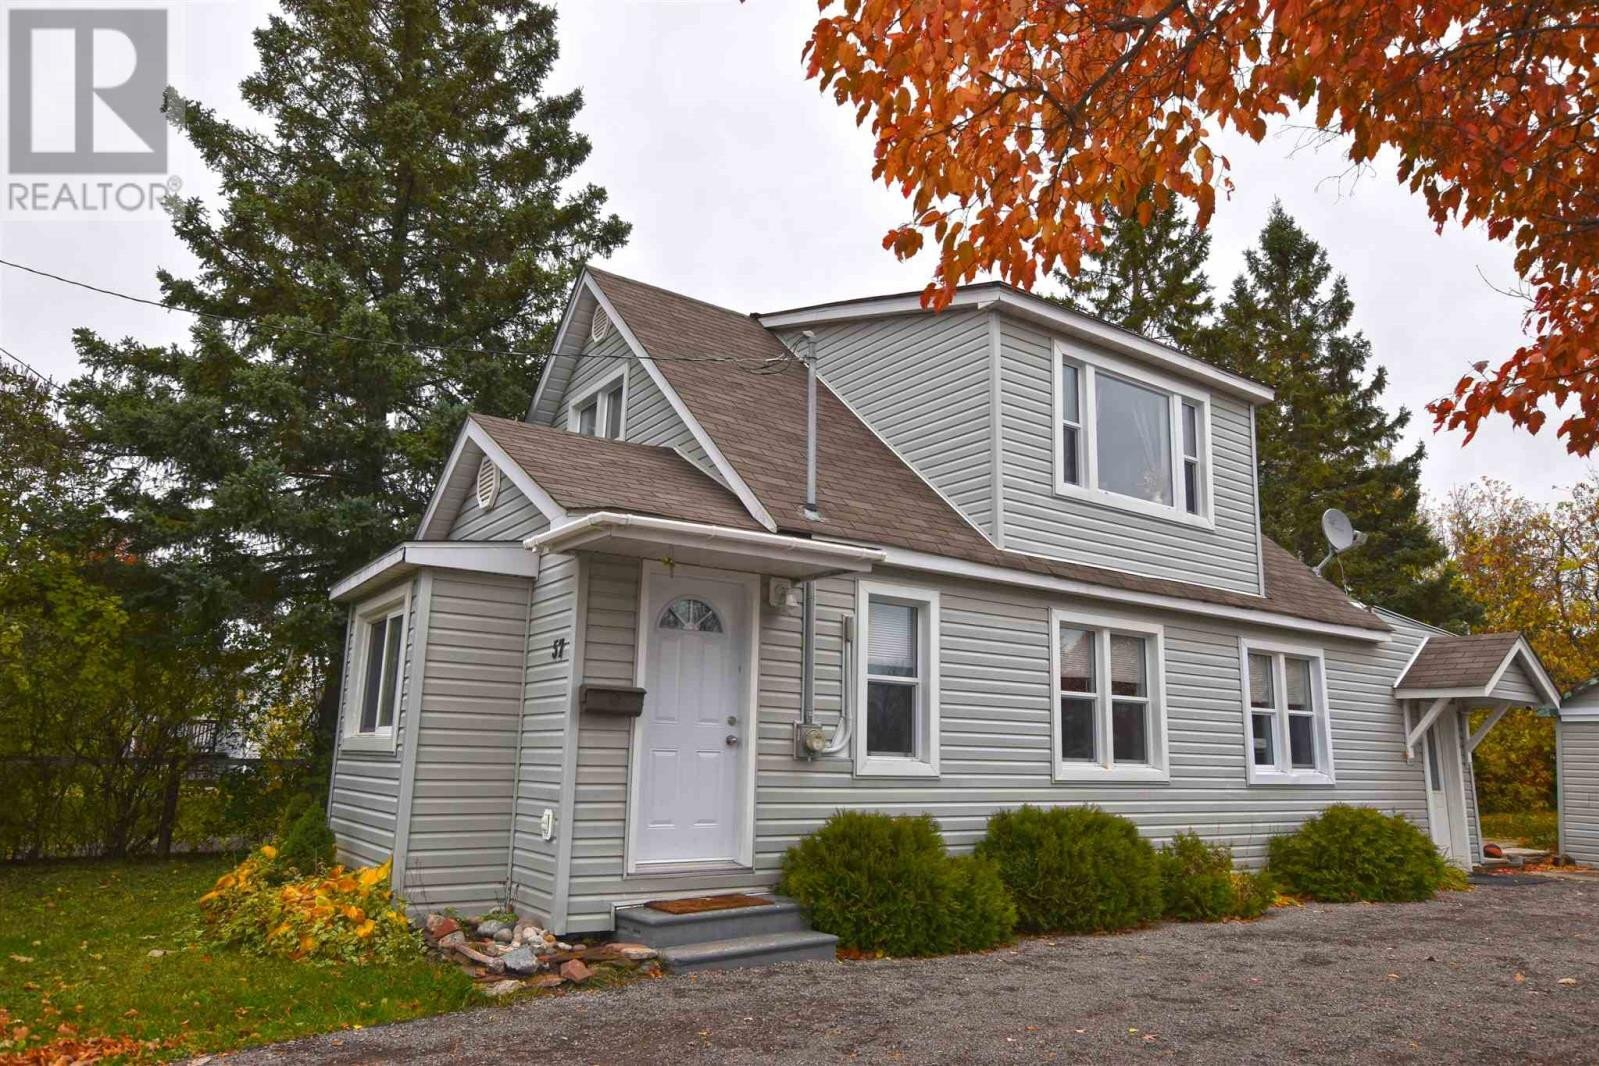 House for sale at 57 Anita Blvd Sault Ste. Marie Ontario - MLS: SM130063